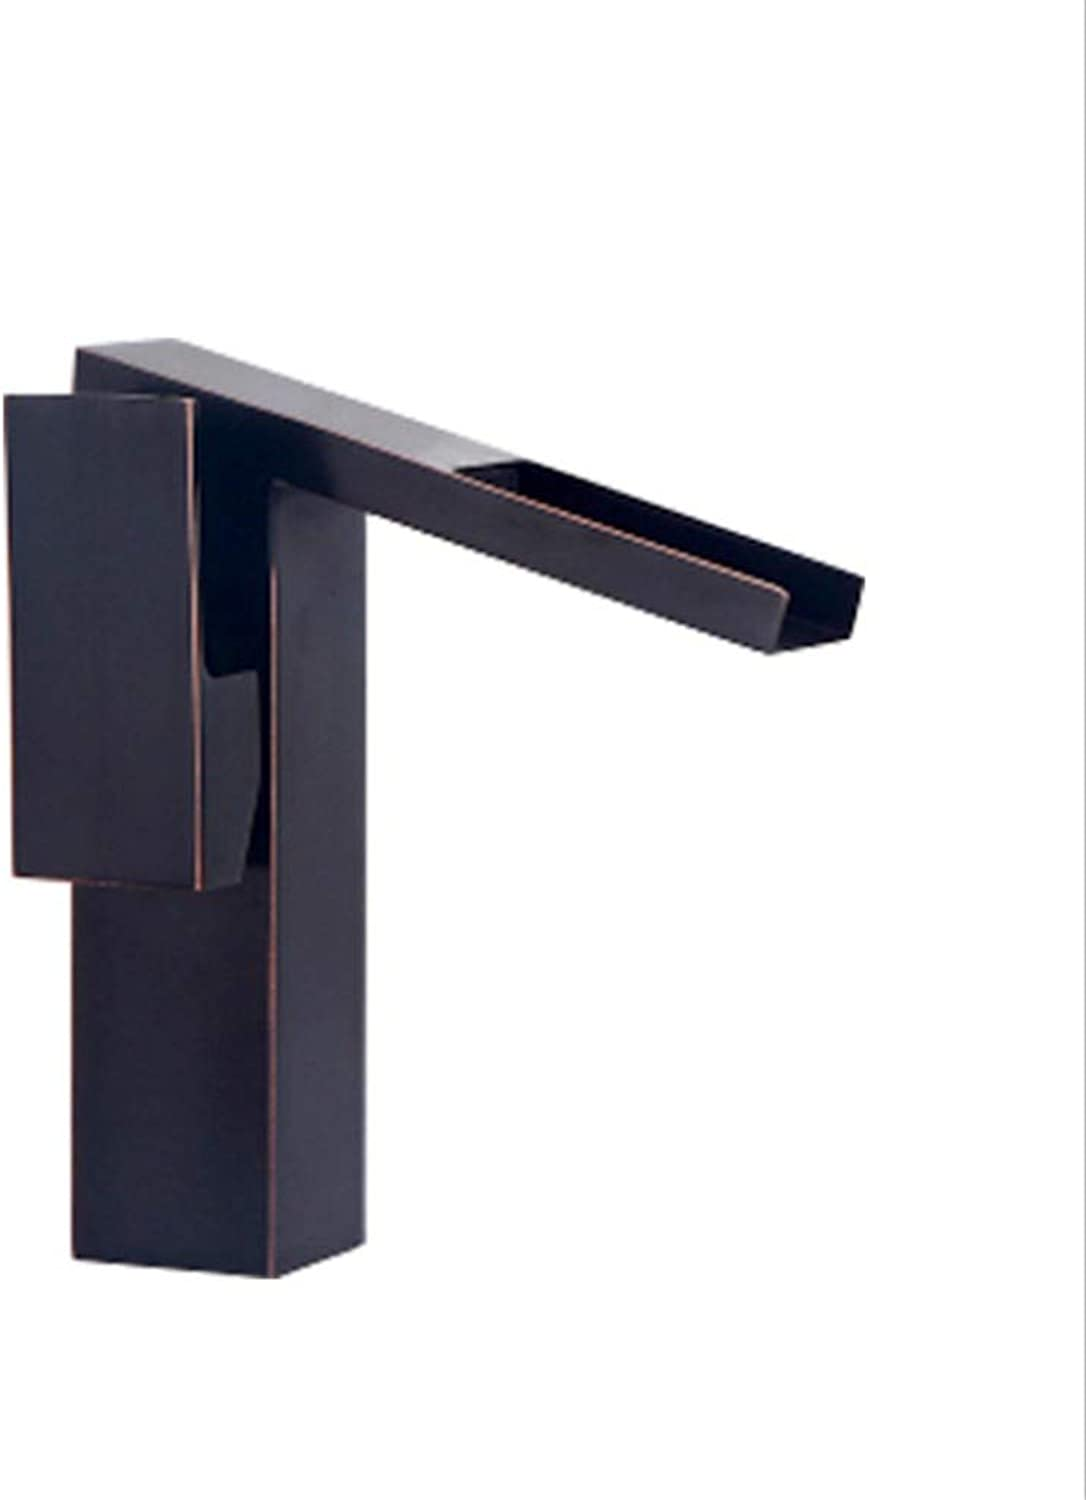 Kitchen Sink Taps Bathroom Taps All Copper Black Waterfall Faucet Hot and Cold Basin Faucet Washbasin Faucet.